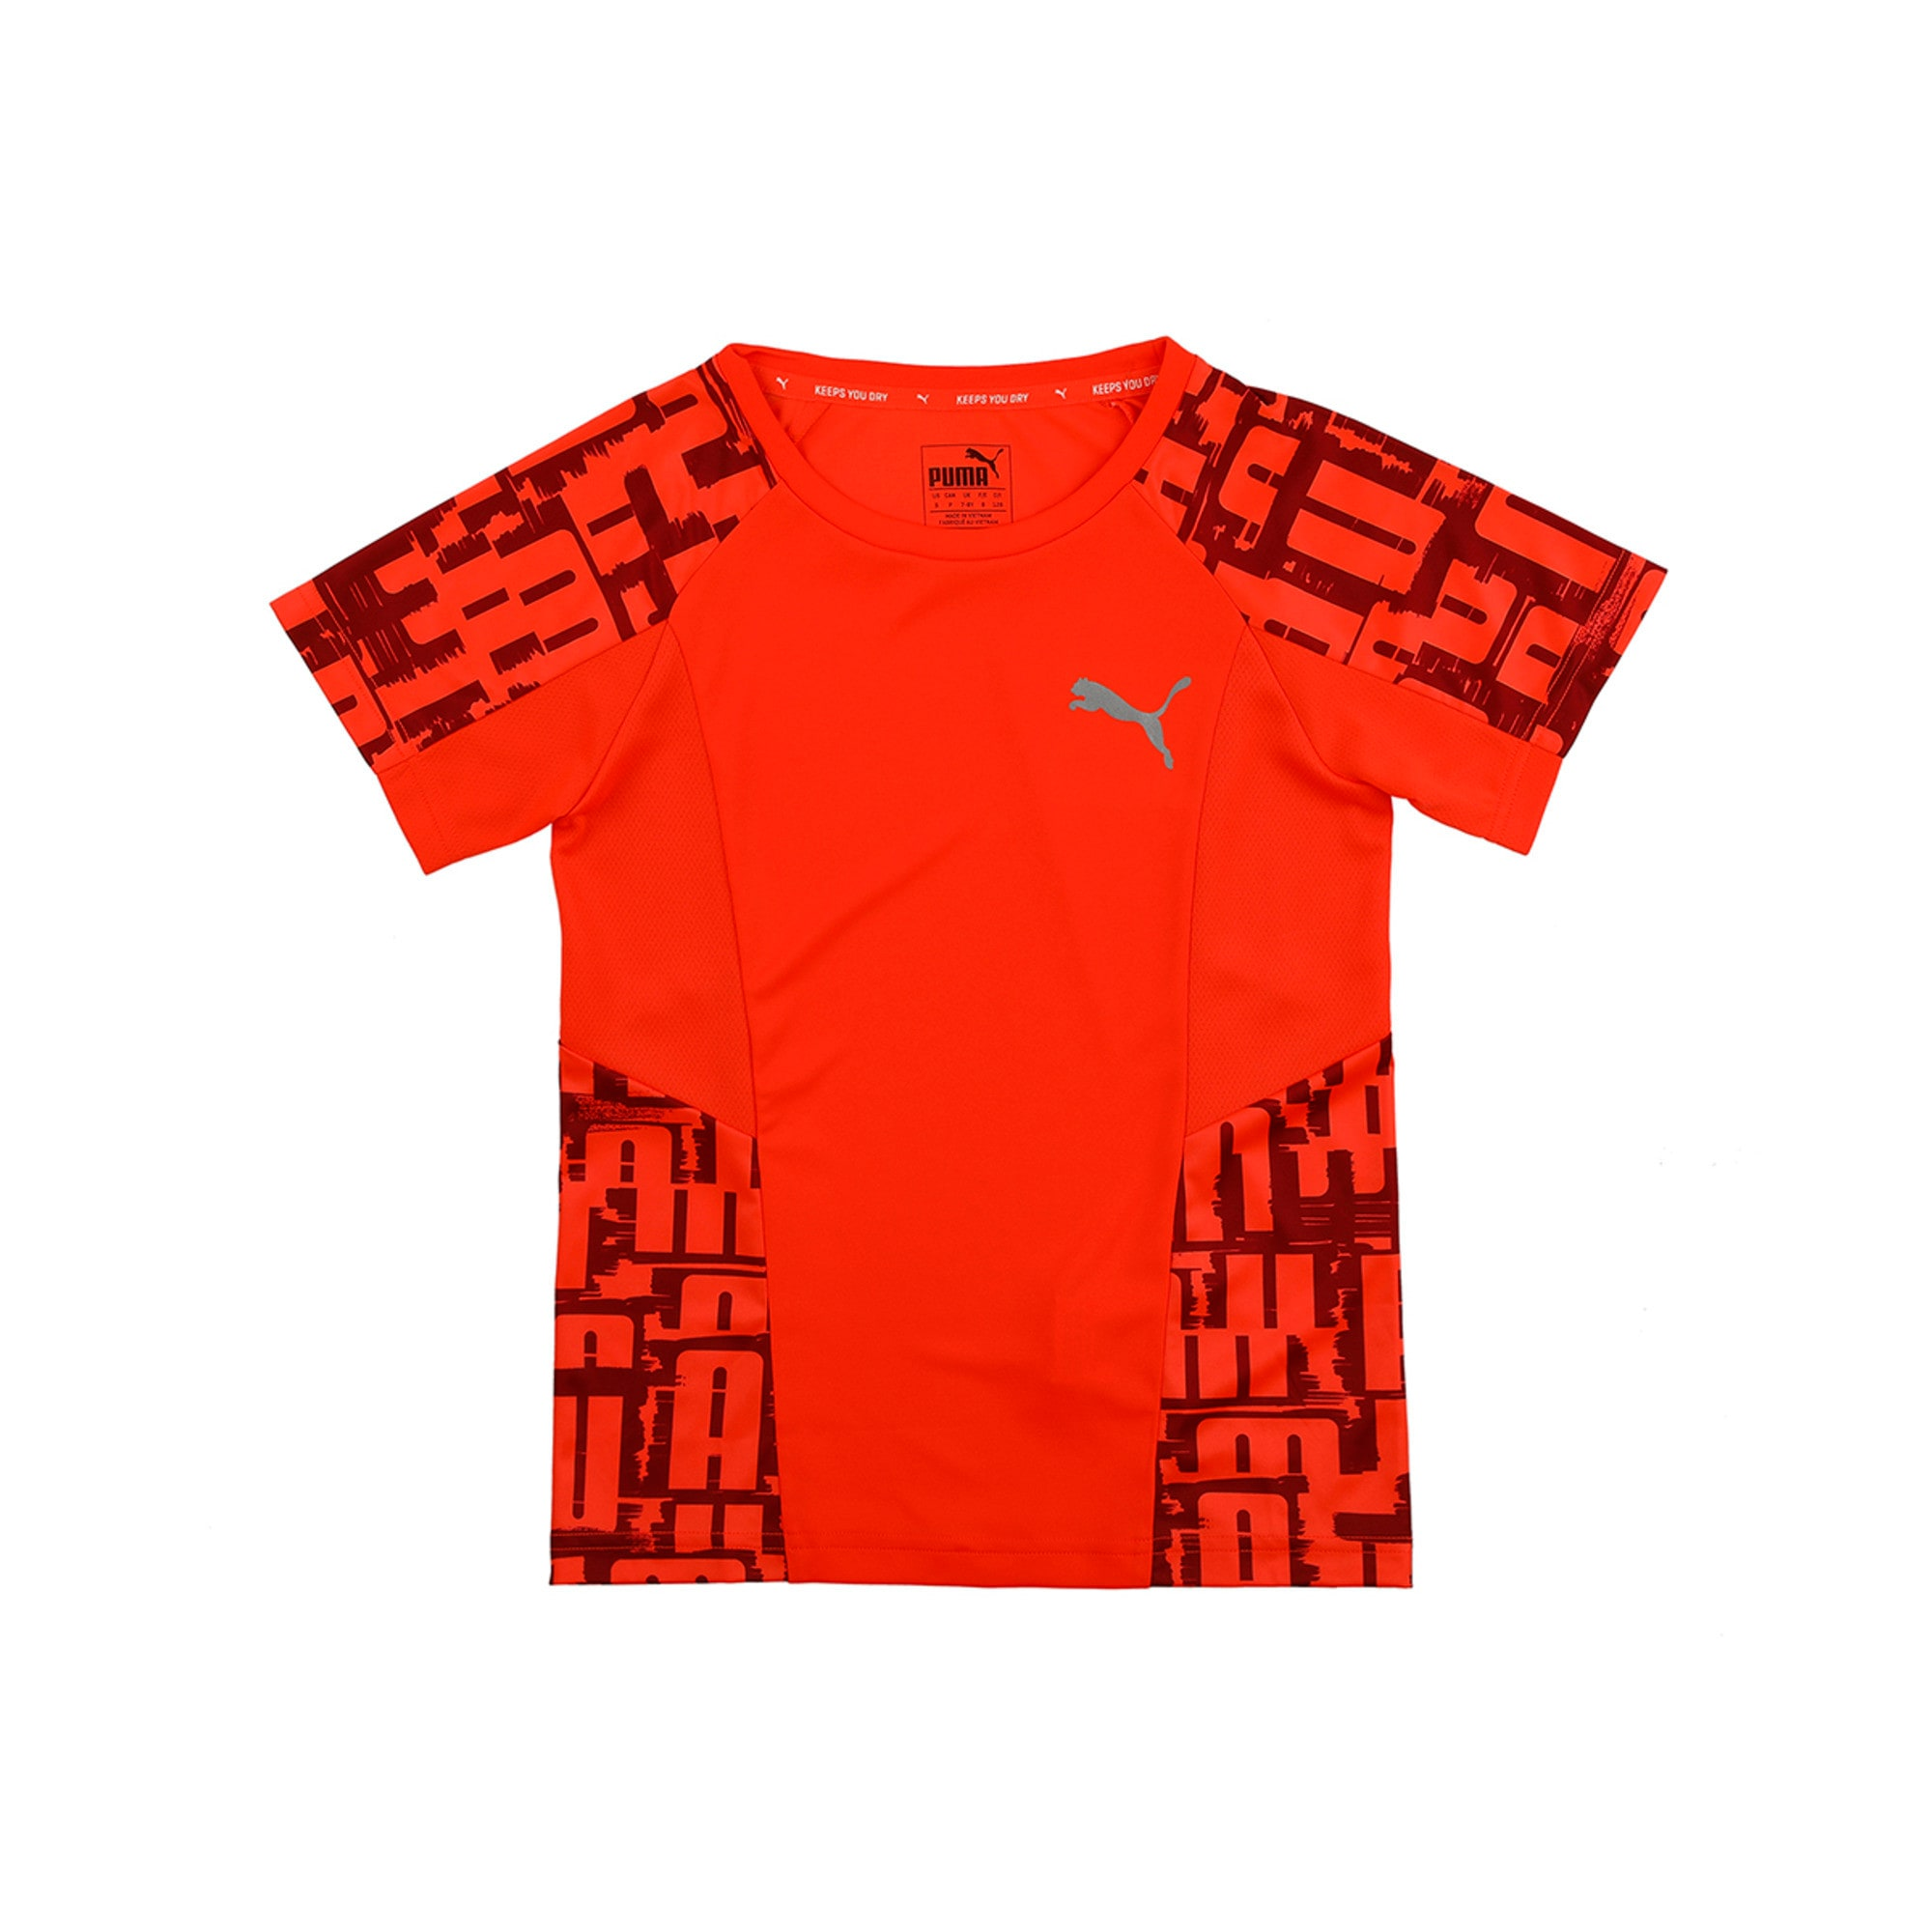 Thumbnail 1 of Active Sports Boys' Tee, Nrgy Red, medium-IND